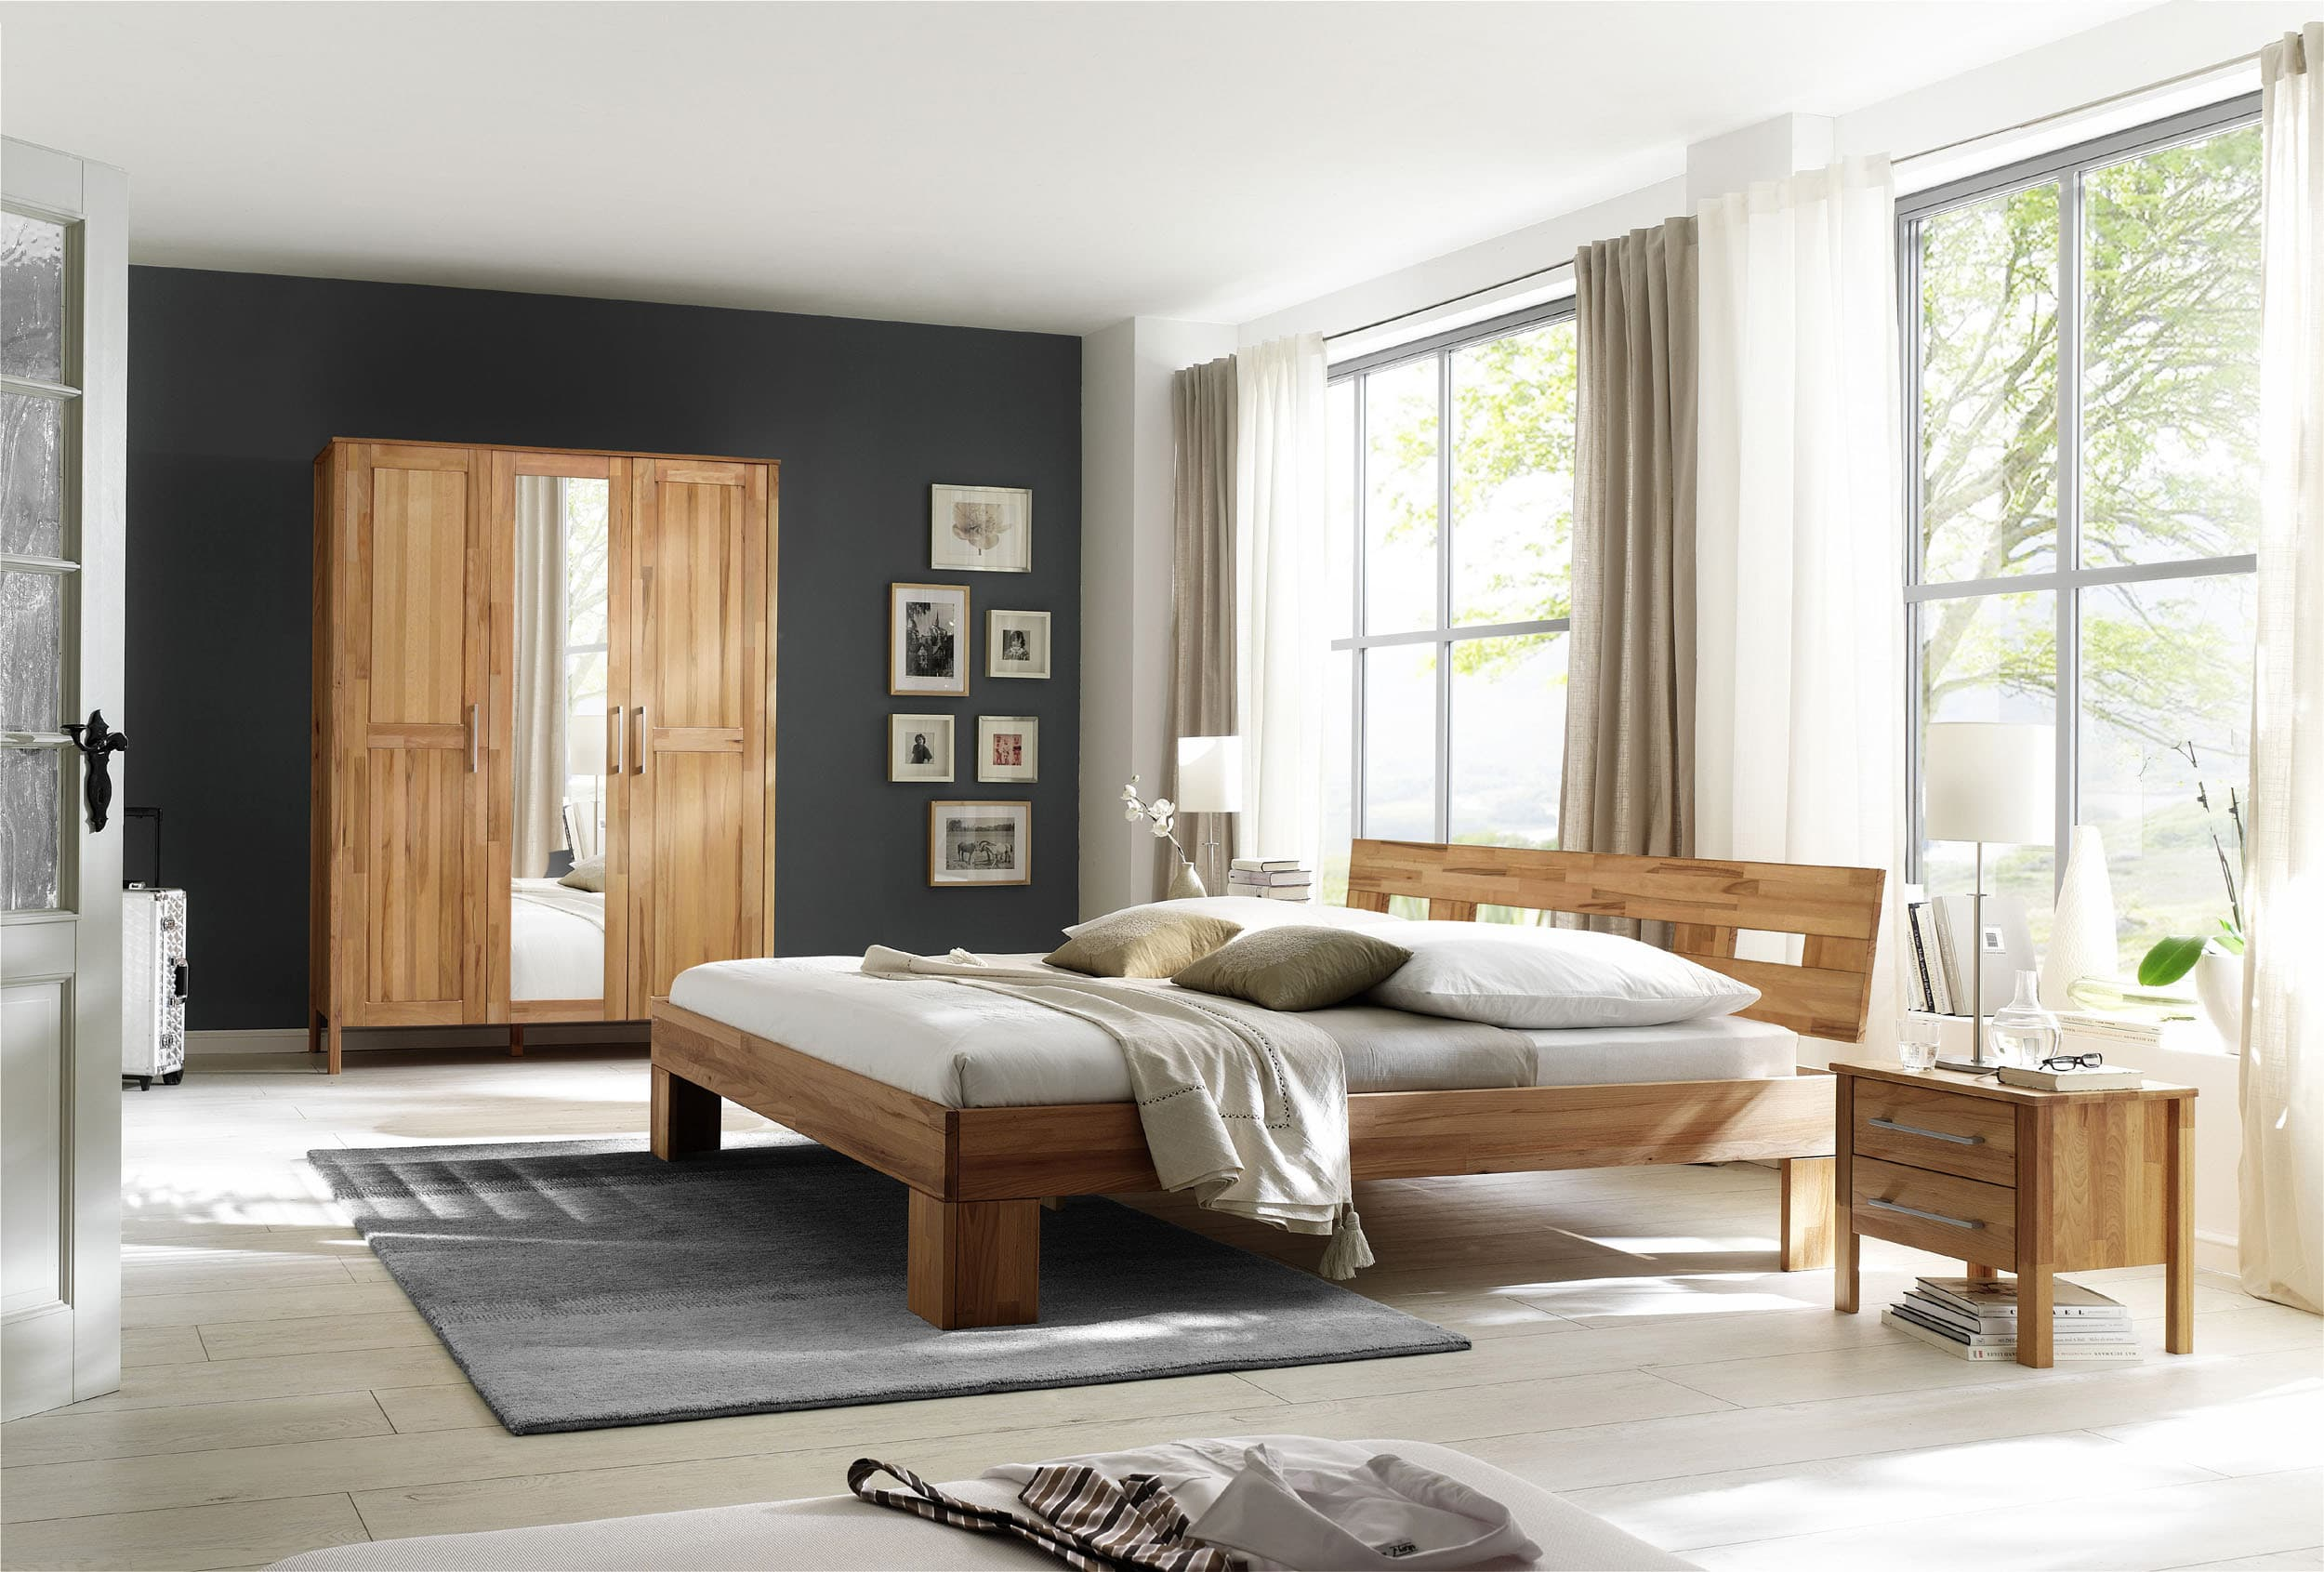 schlafzimmer kernbuche massiv modesty komplett 180 bestellen pickupm. Black Bedroom Furniture Sets. Home Design Ideas